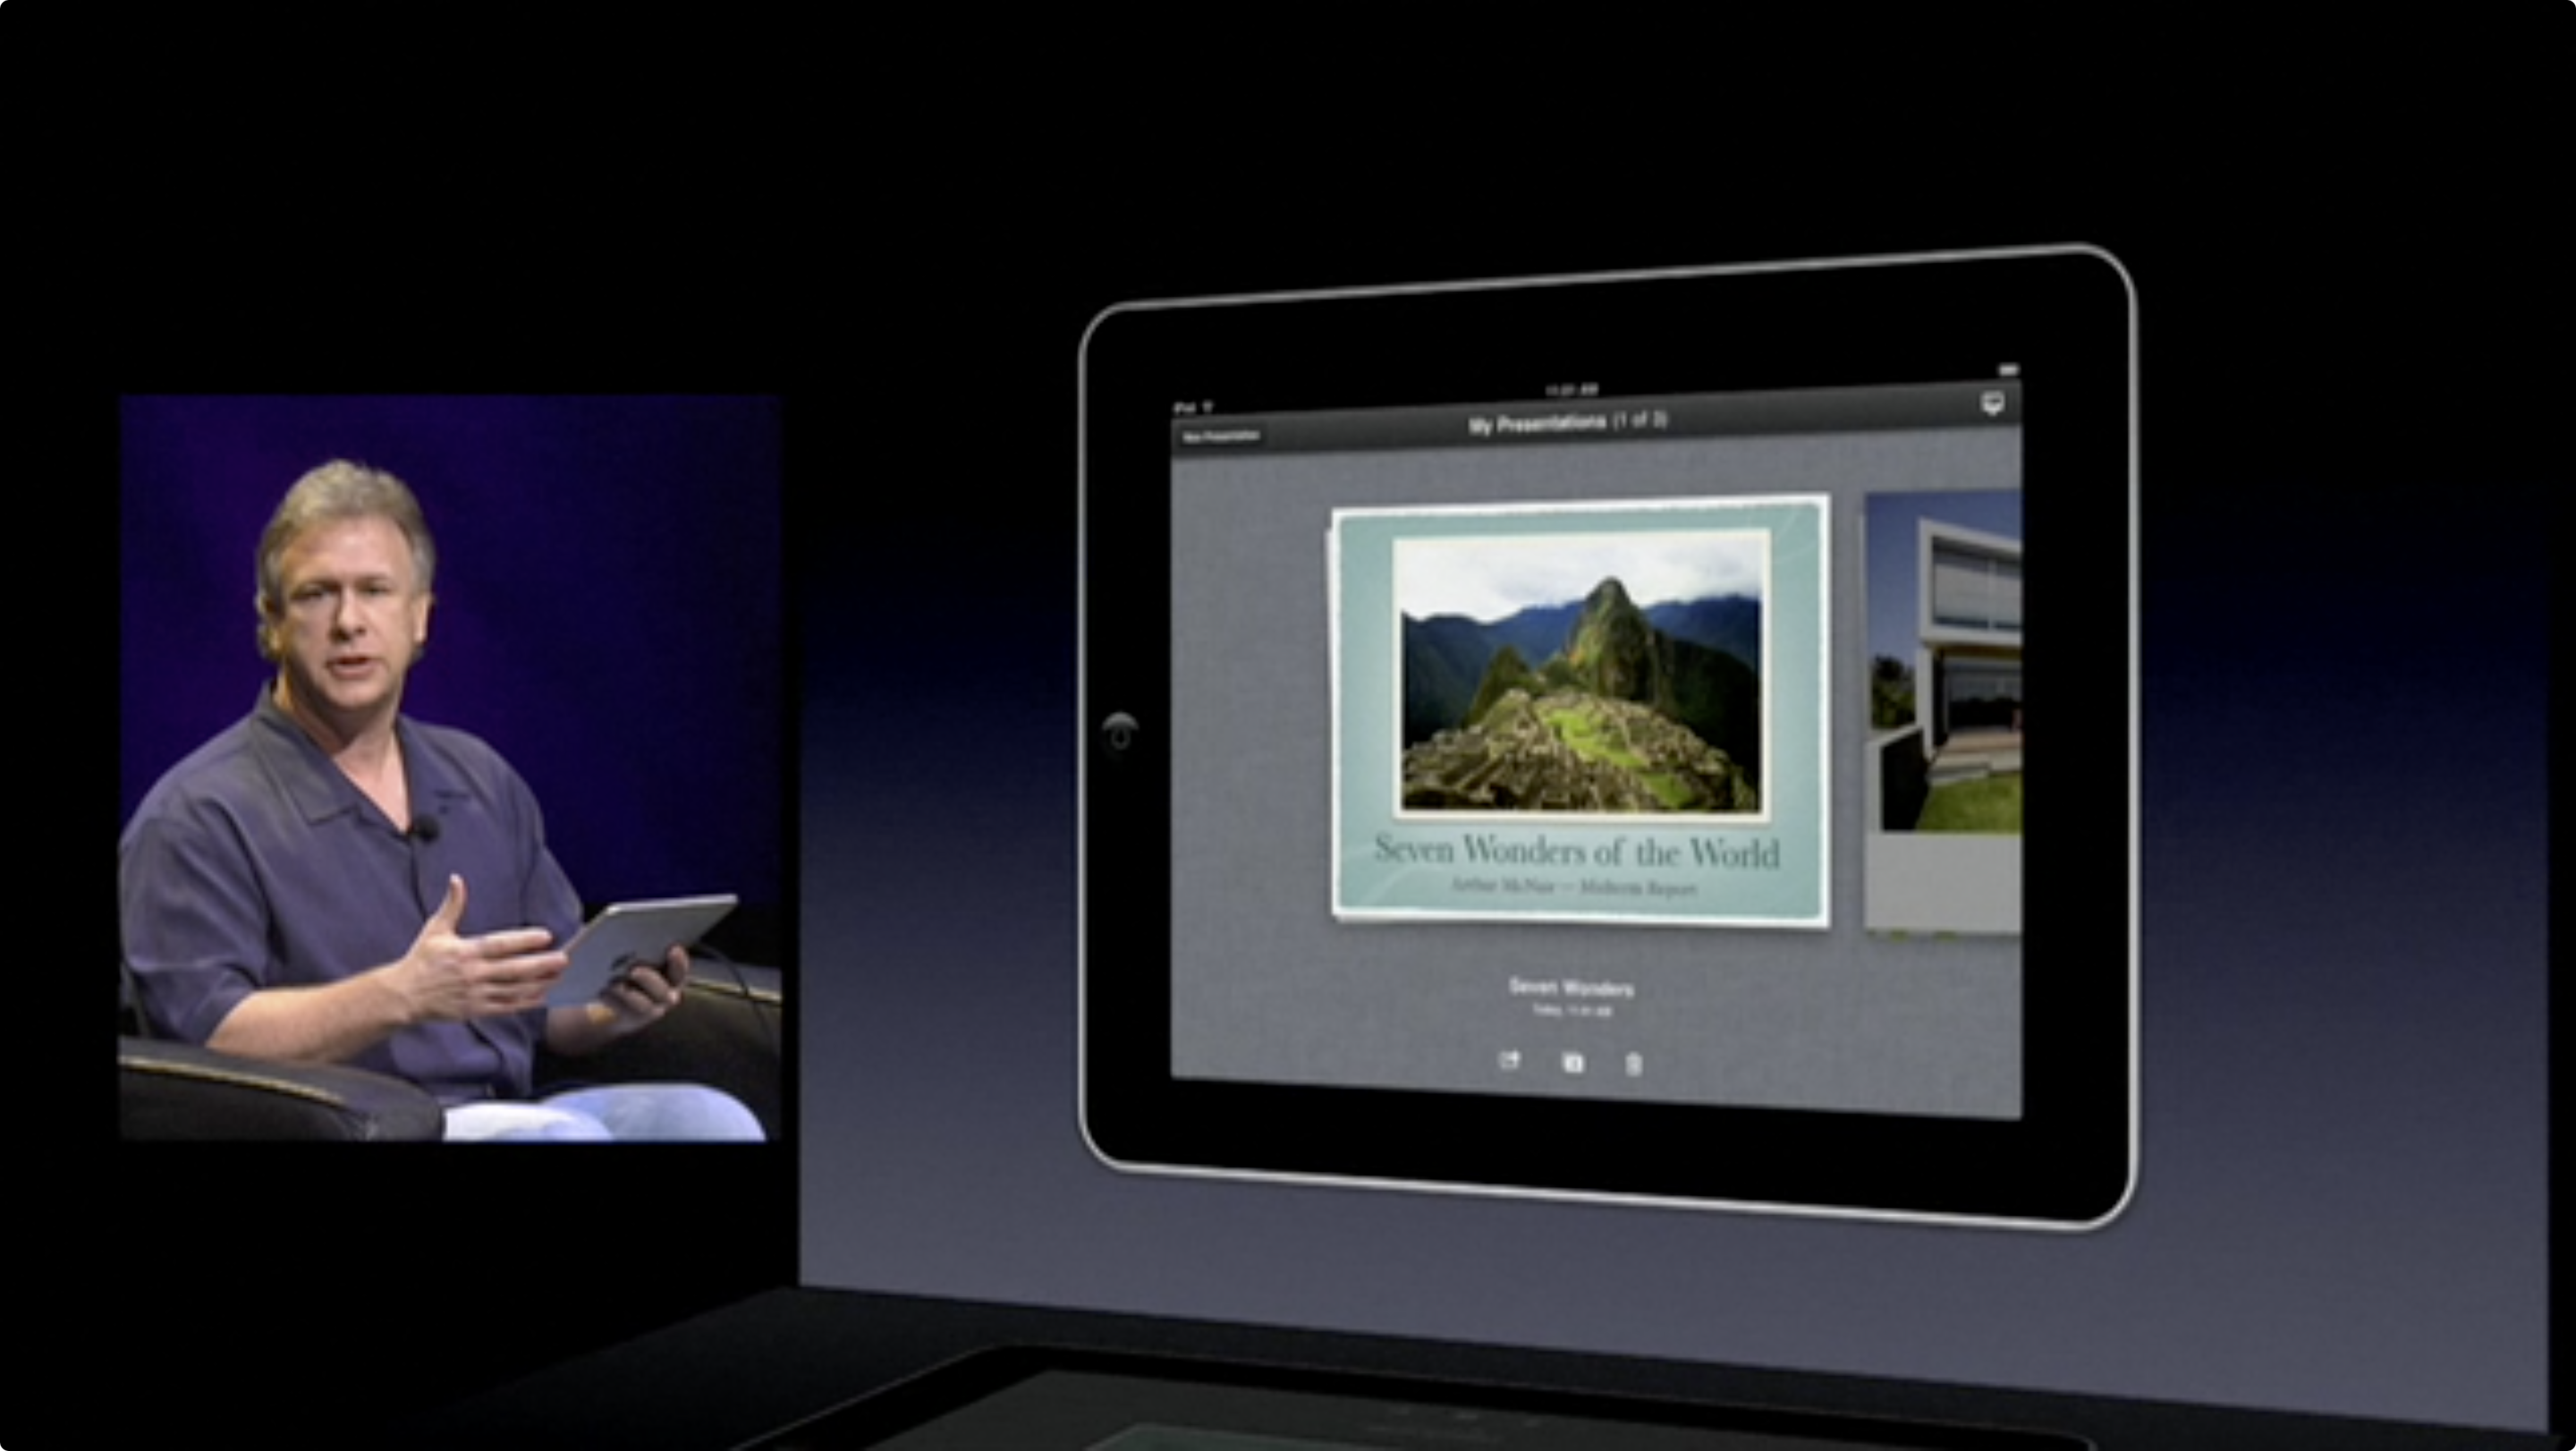 apple_announces_ipad_20100127_5